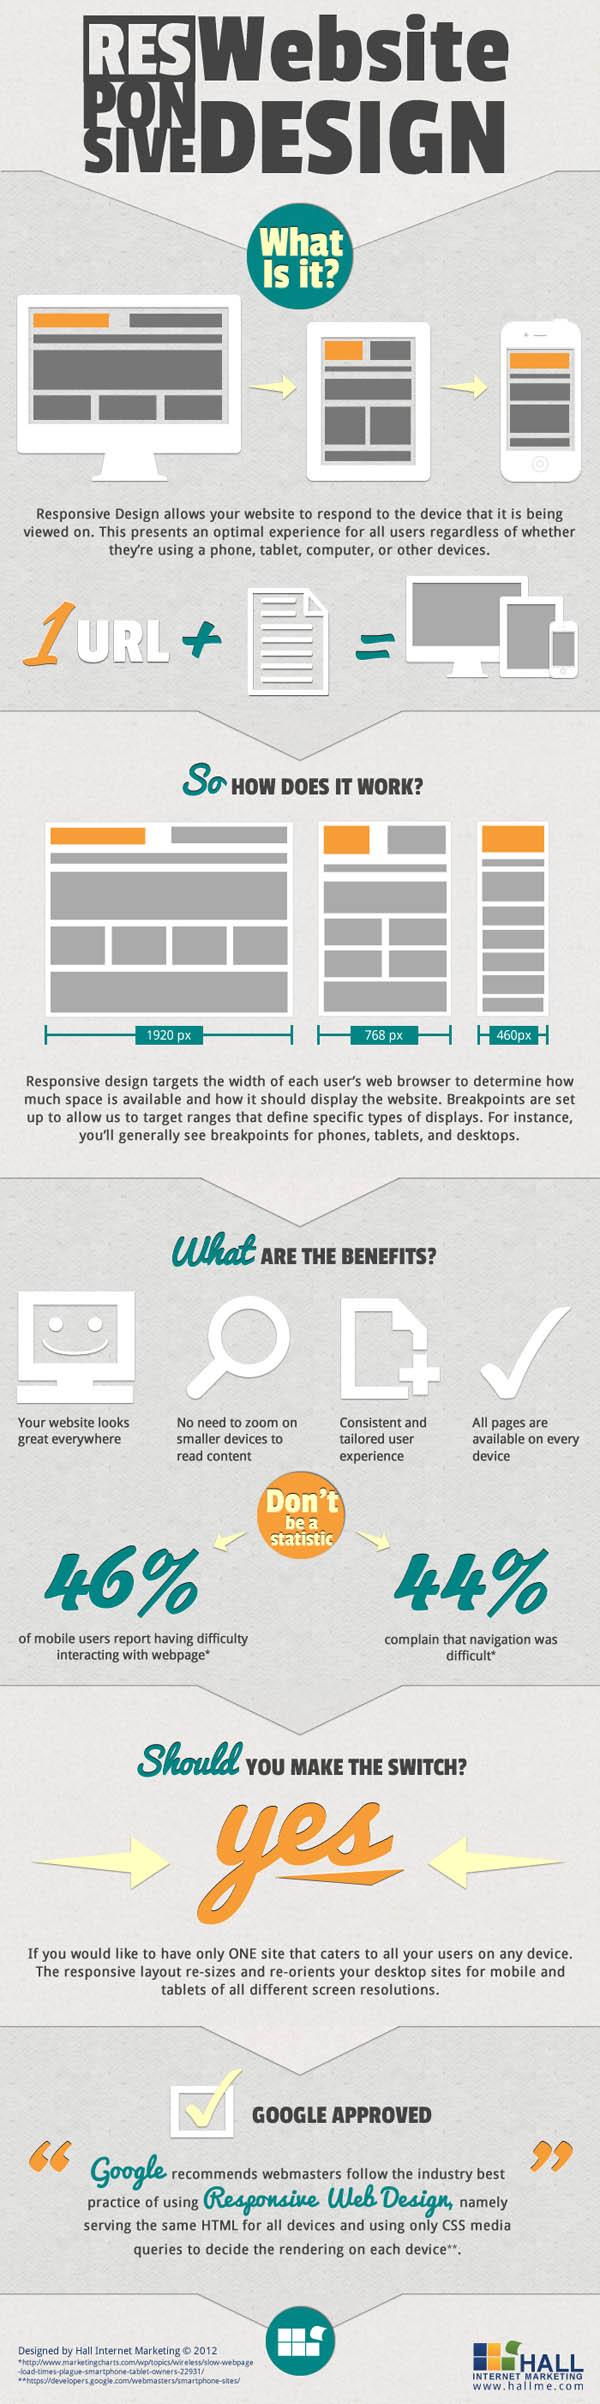 responsive website design what is it Responsive Website Design – What is it? [Infographic]